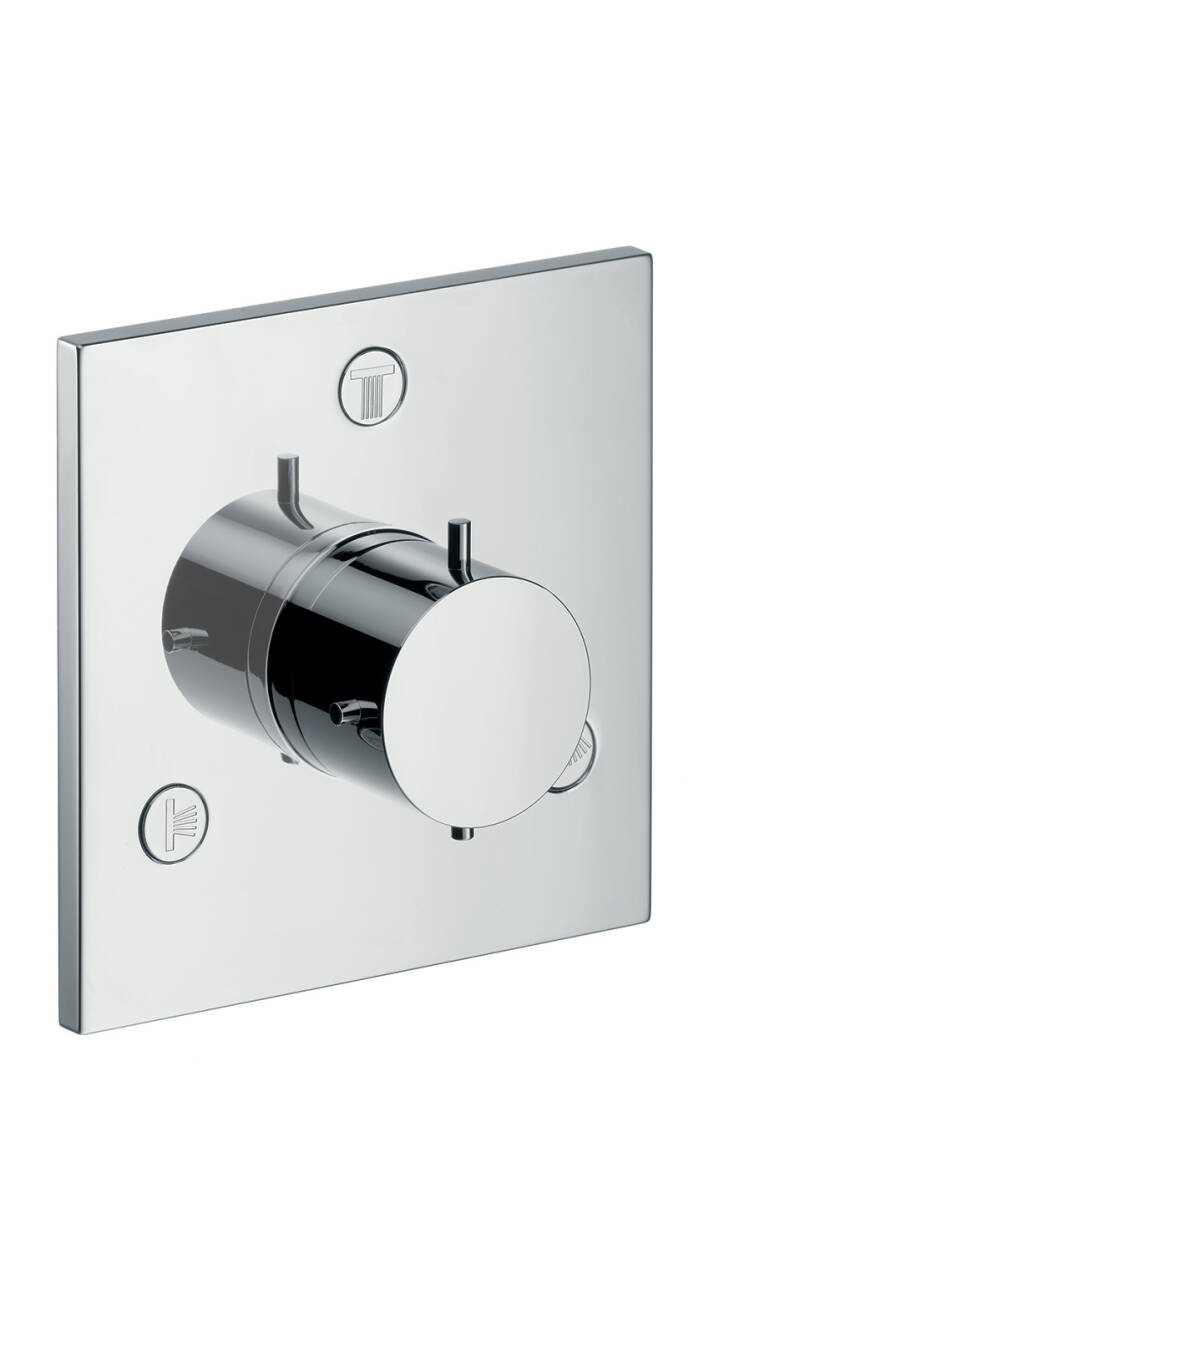 Shut-off/ diverter valve Trio/ Quattro for concealed installation, Brushed Bronze, 10934140